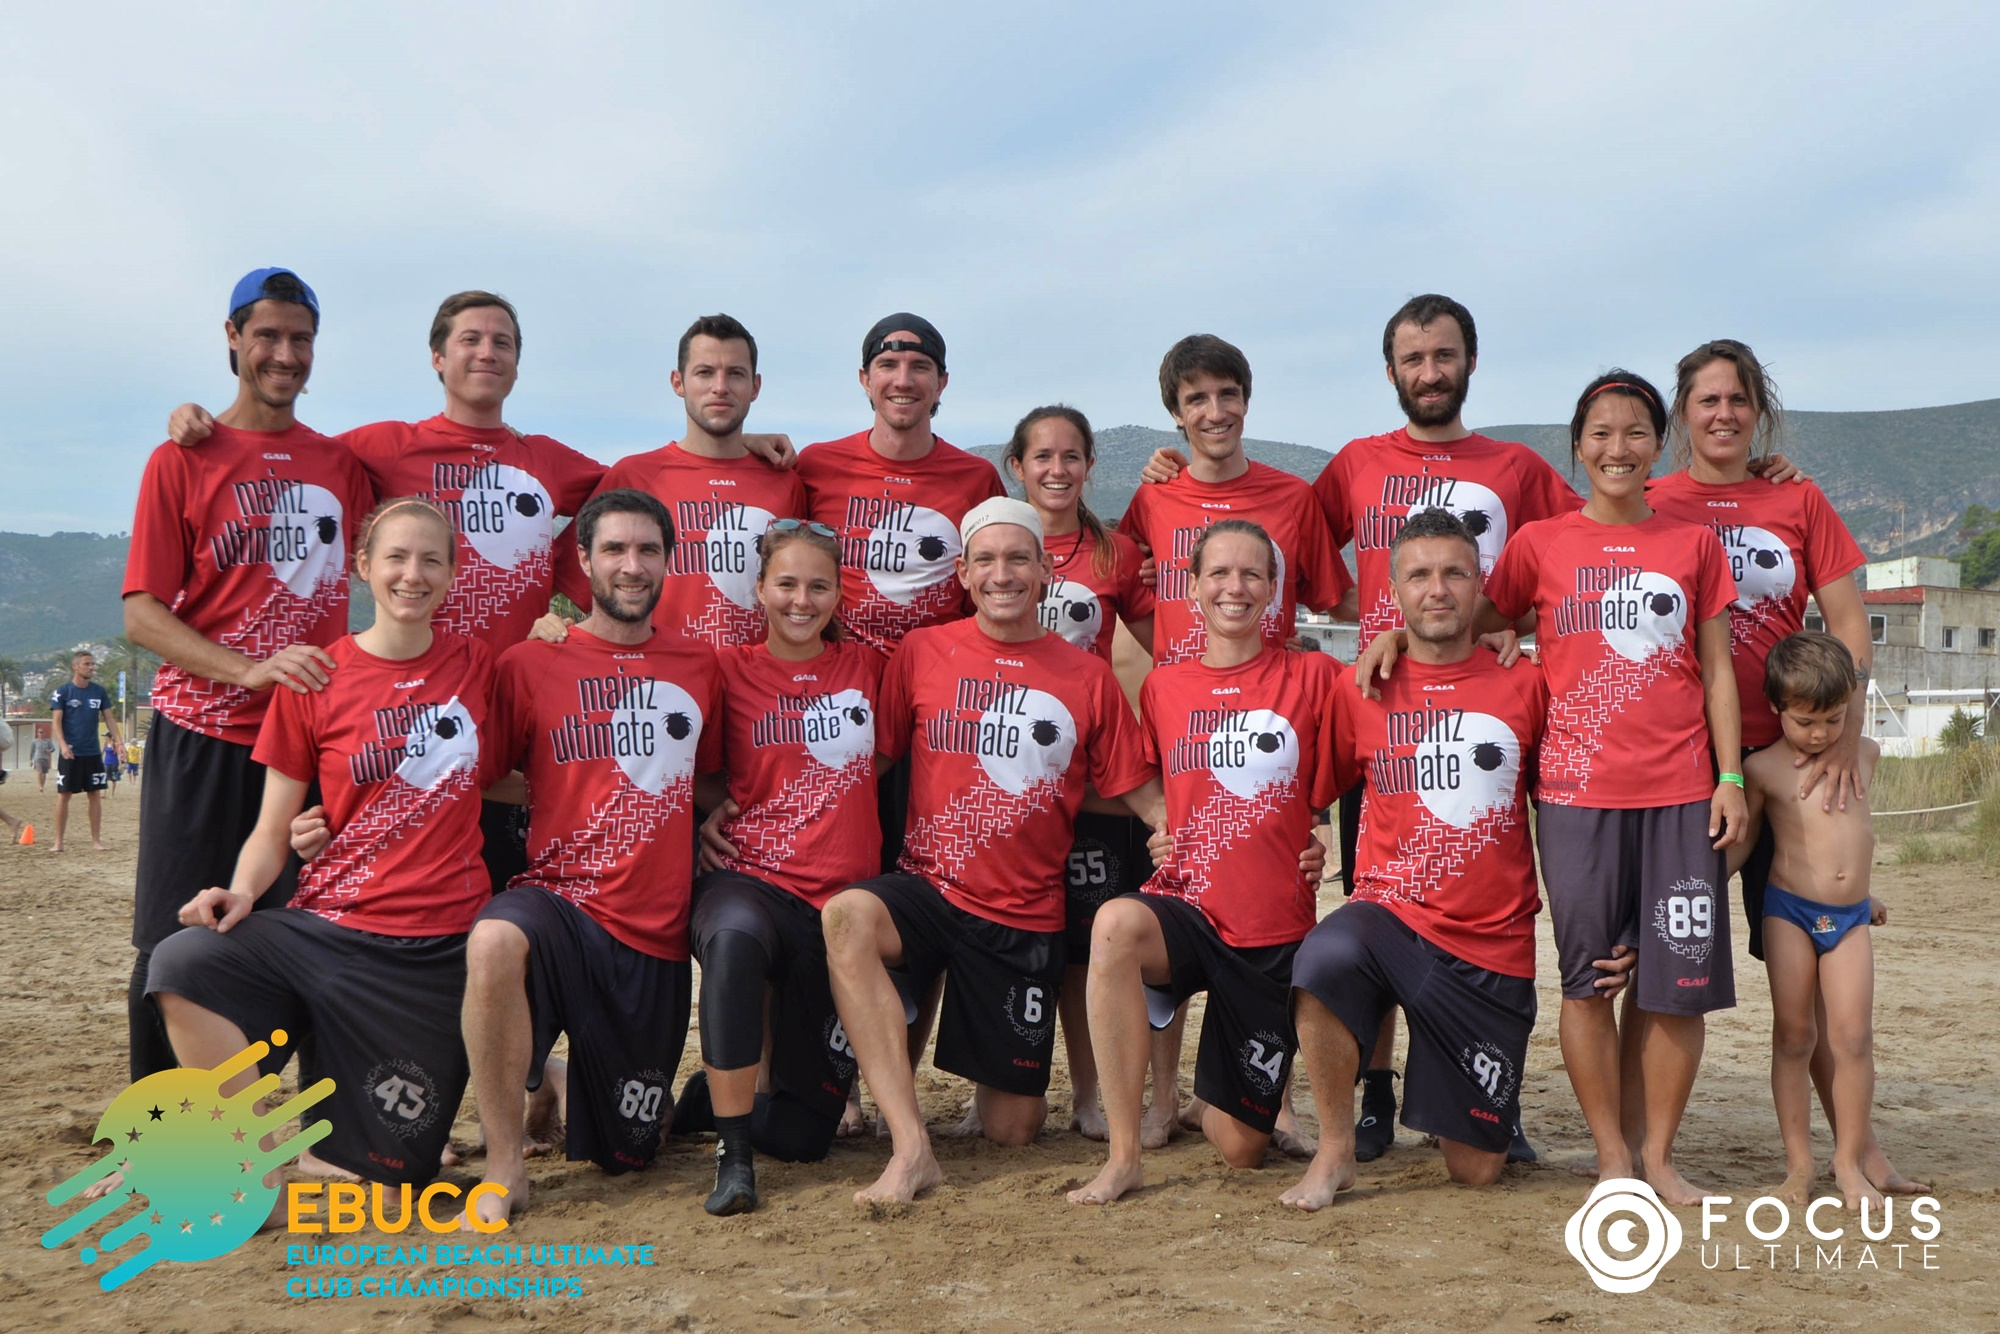 Team picture of Mainzelrenner Mixed